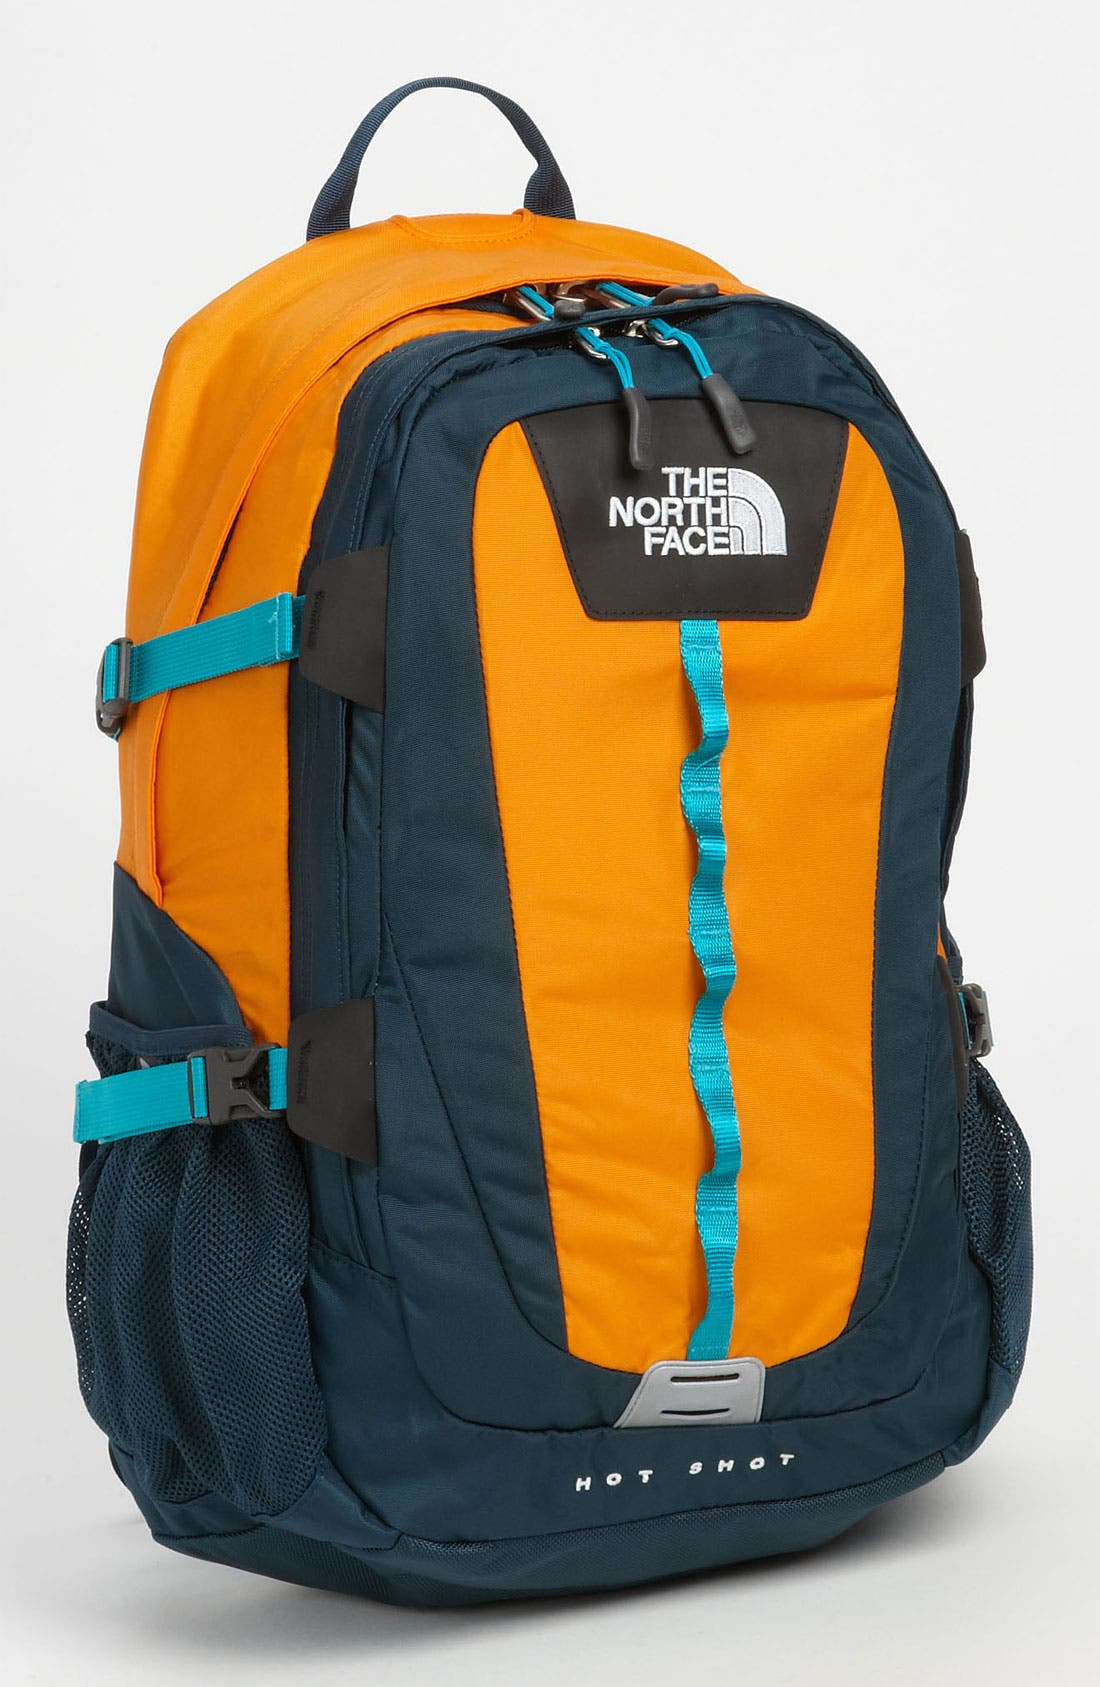 Alternate Image 1 Selected - The North Face 'Hot Shot' Backpack